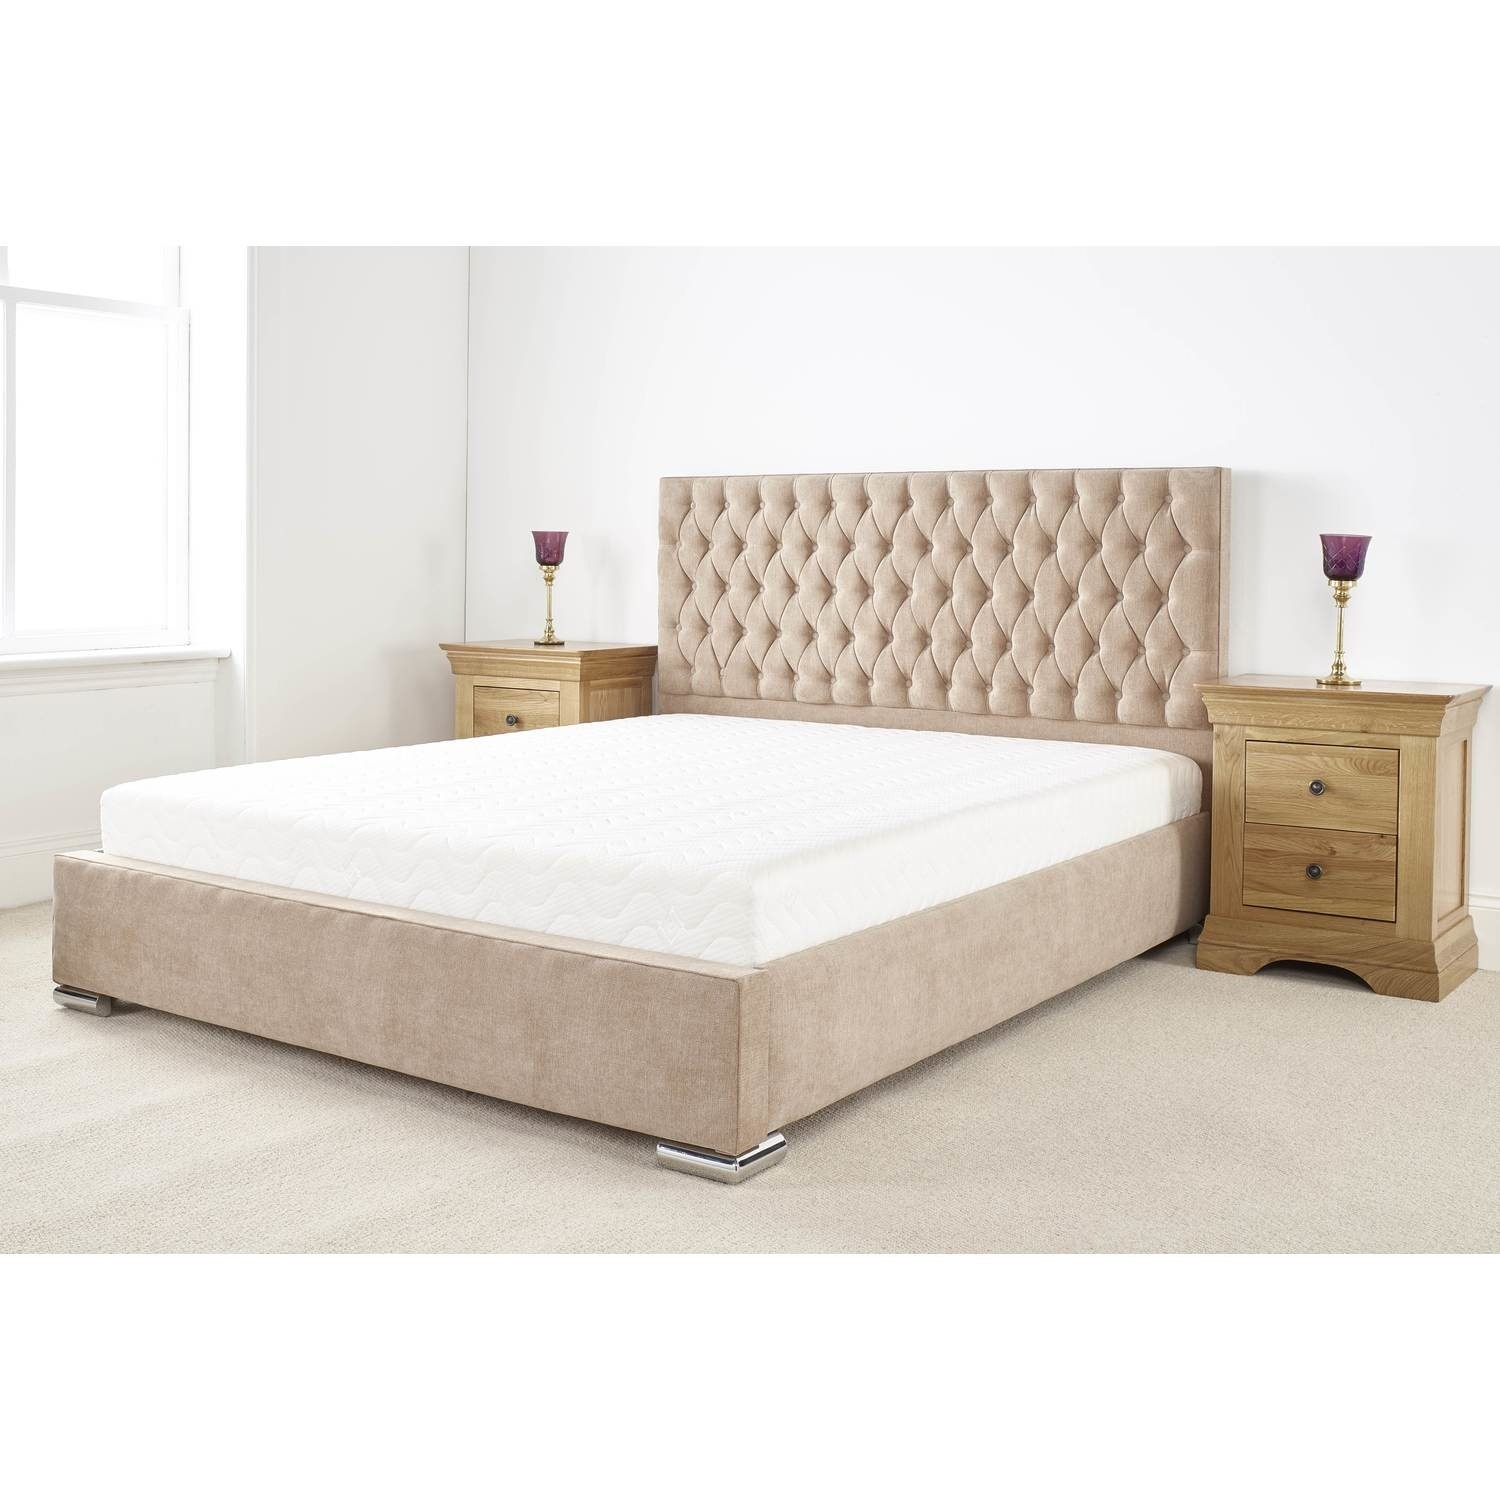 Fernley King Size Bed Frame In Beige Soft Touch Linen Fabric